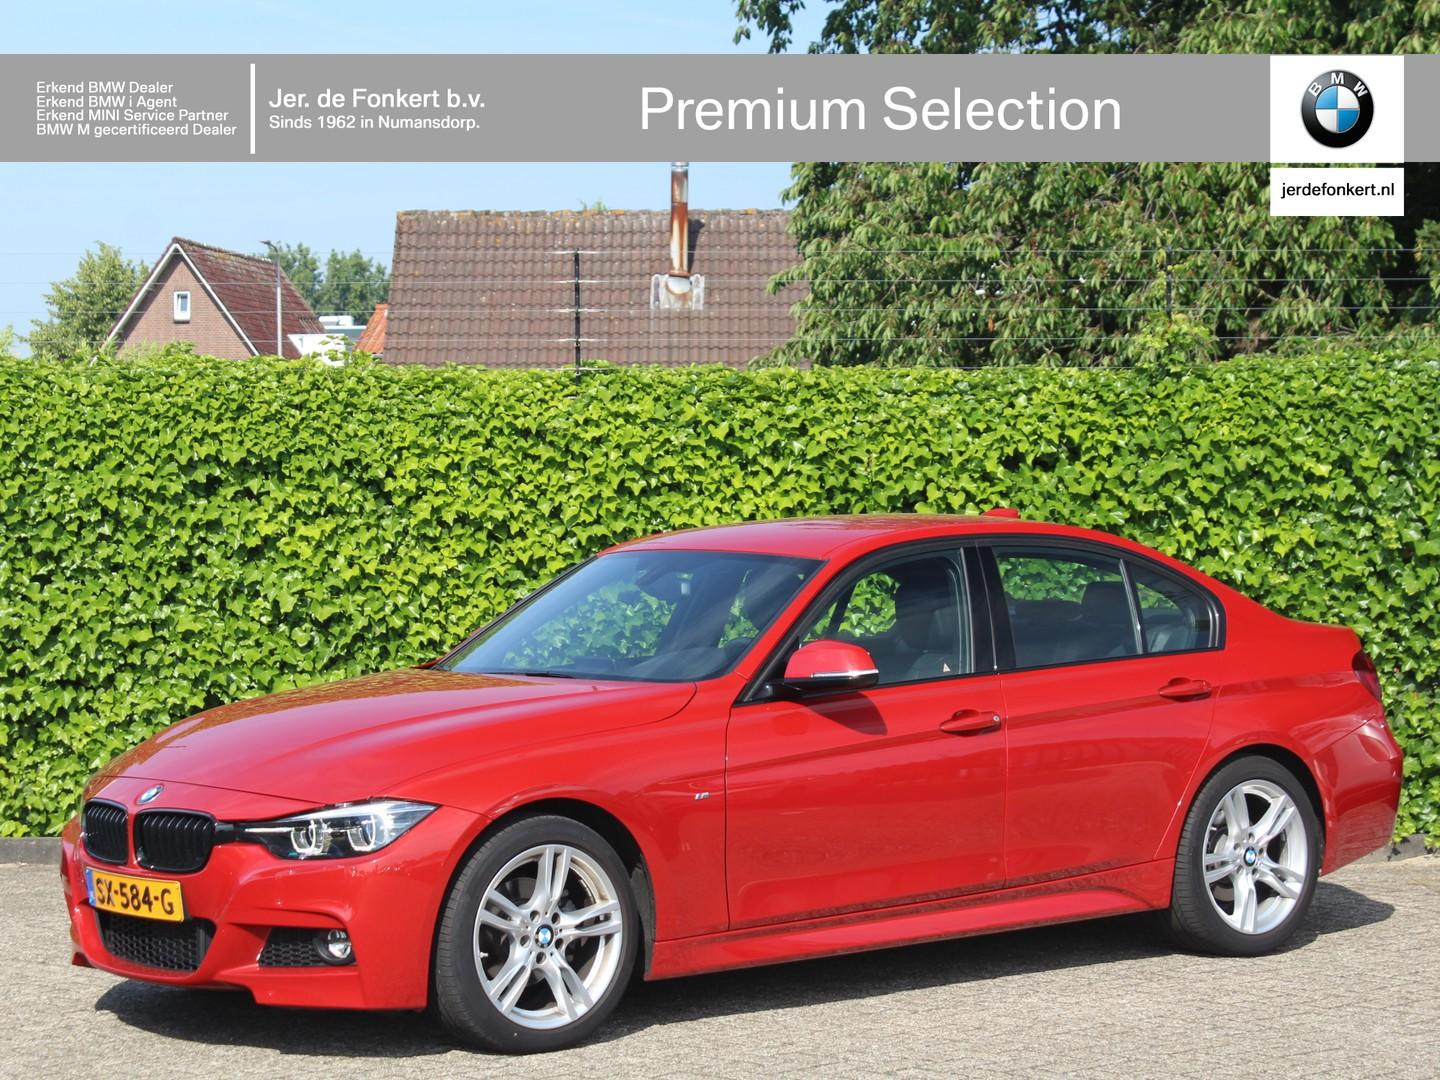 Bmw 3 serie Sedan 318i edition m sport shadow